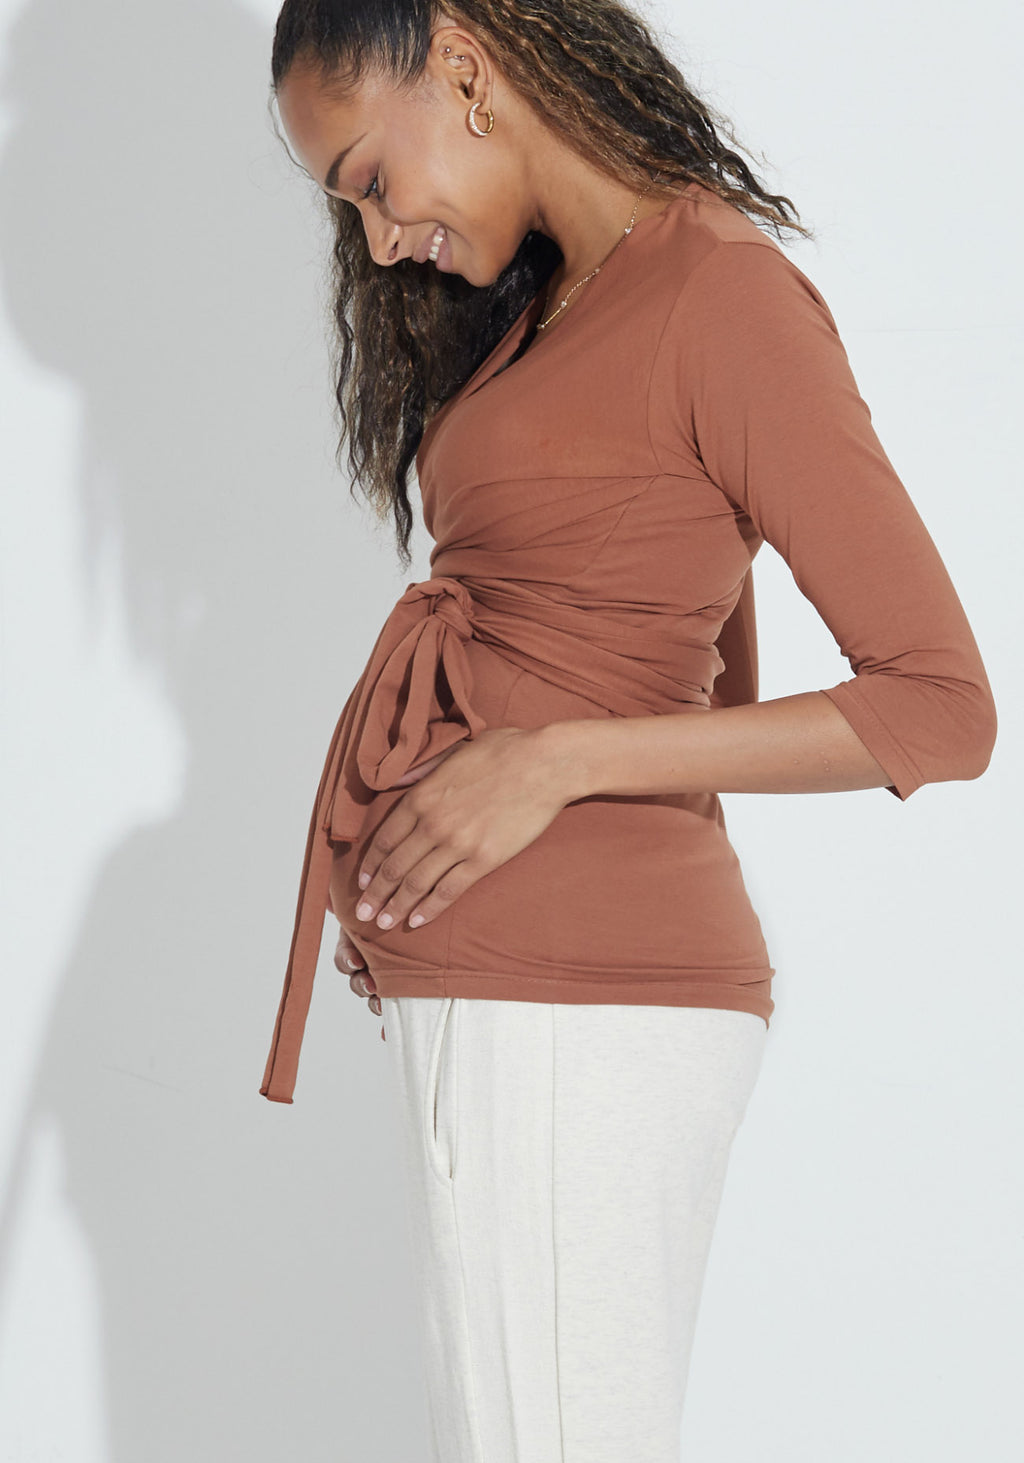 KANGAROO CARE NURSING TOP